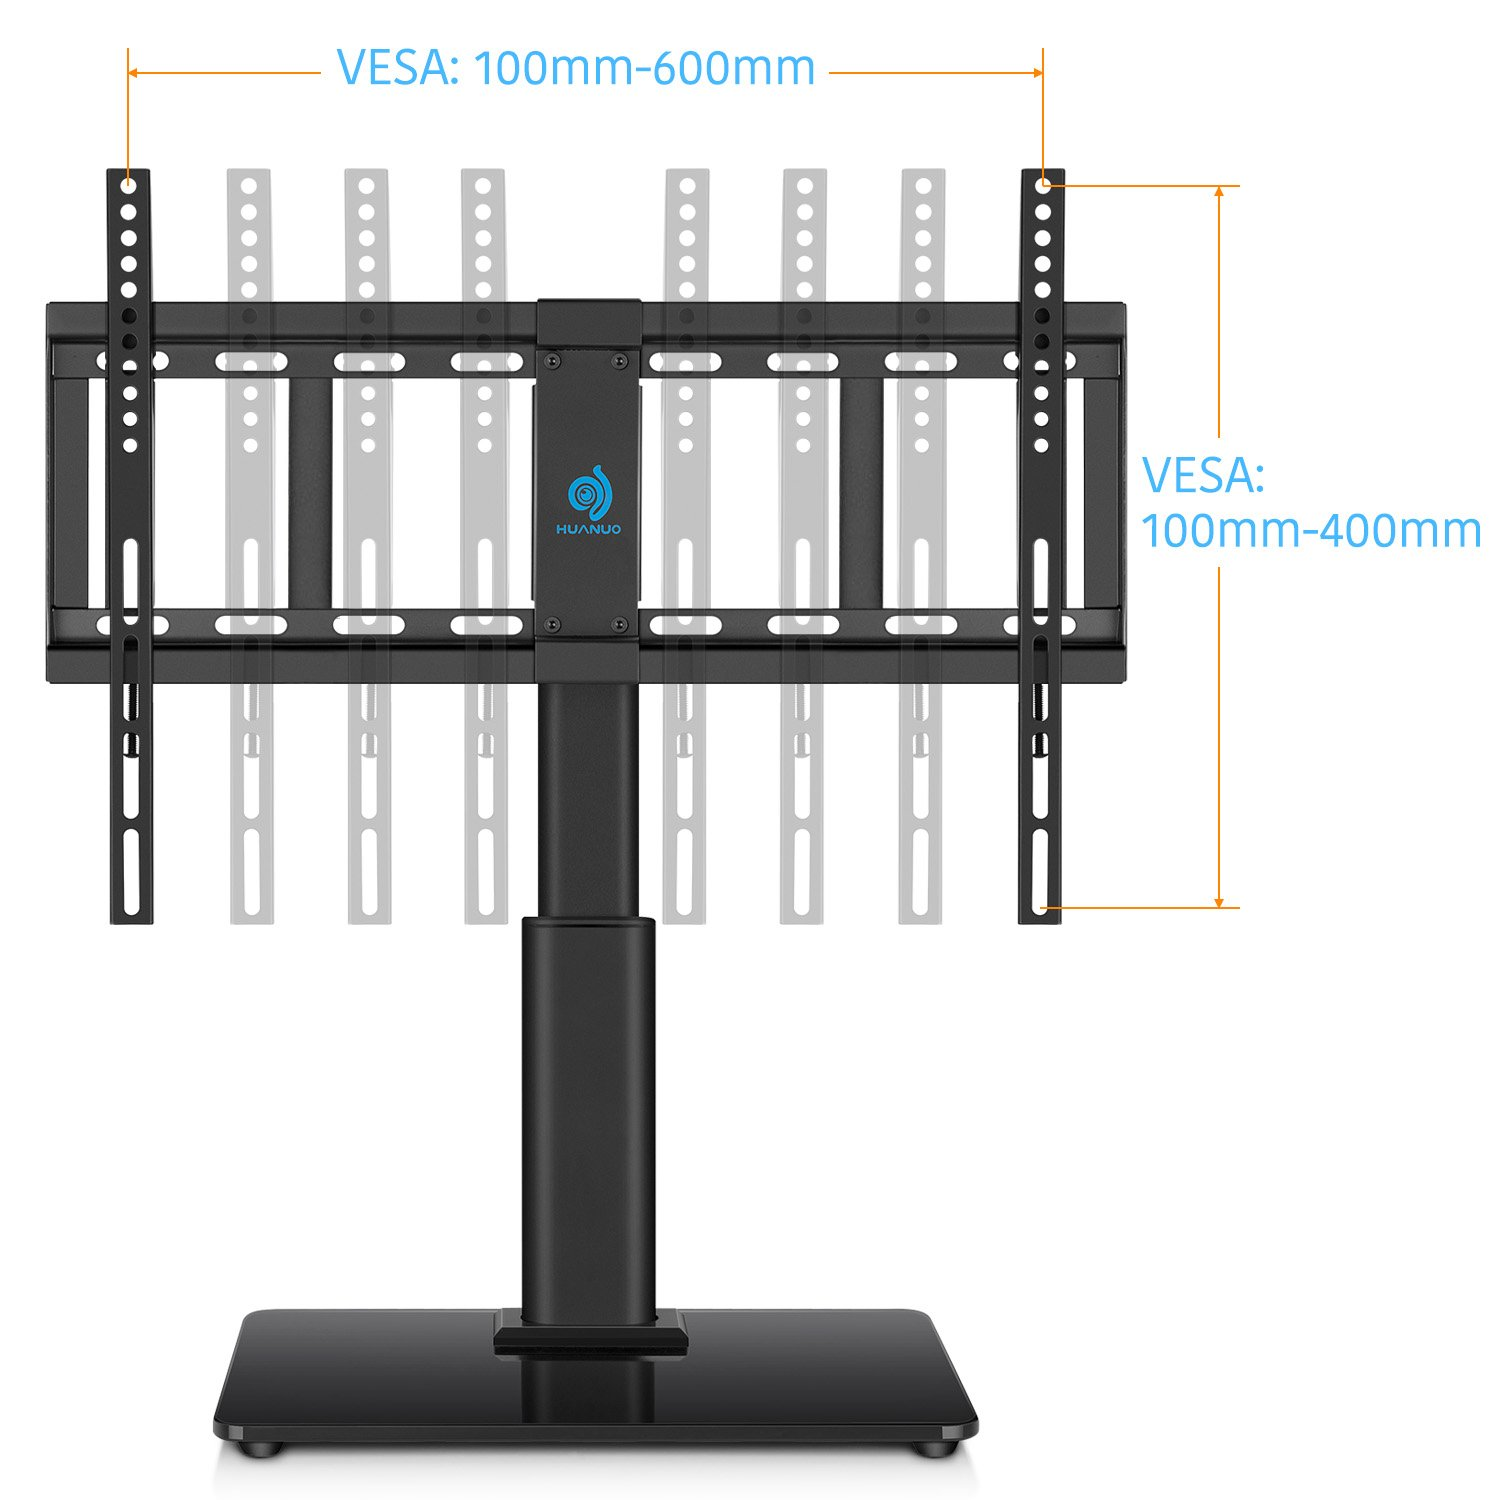 Huanuo Hn Tvs02 Universal Table Top Tv Stand For 32 To 60 Inch Tvs